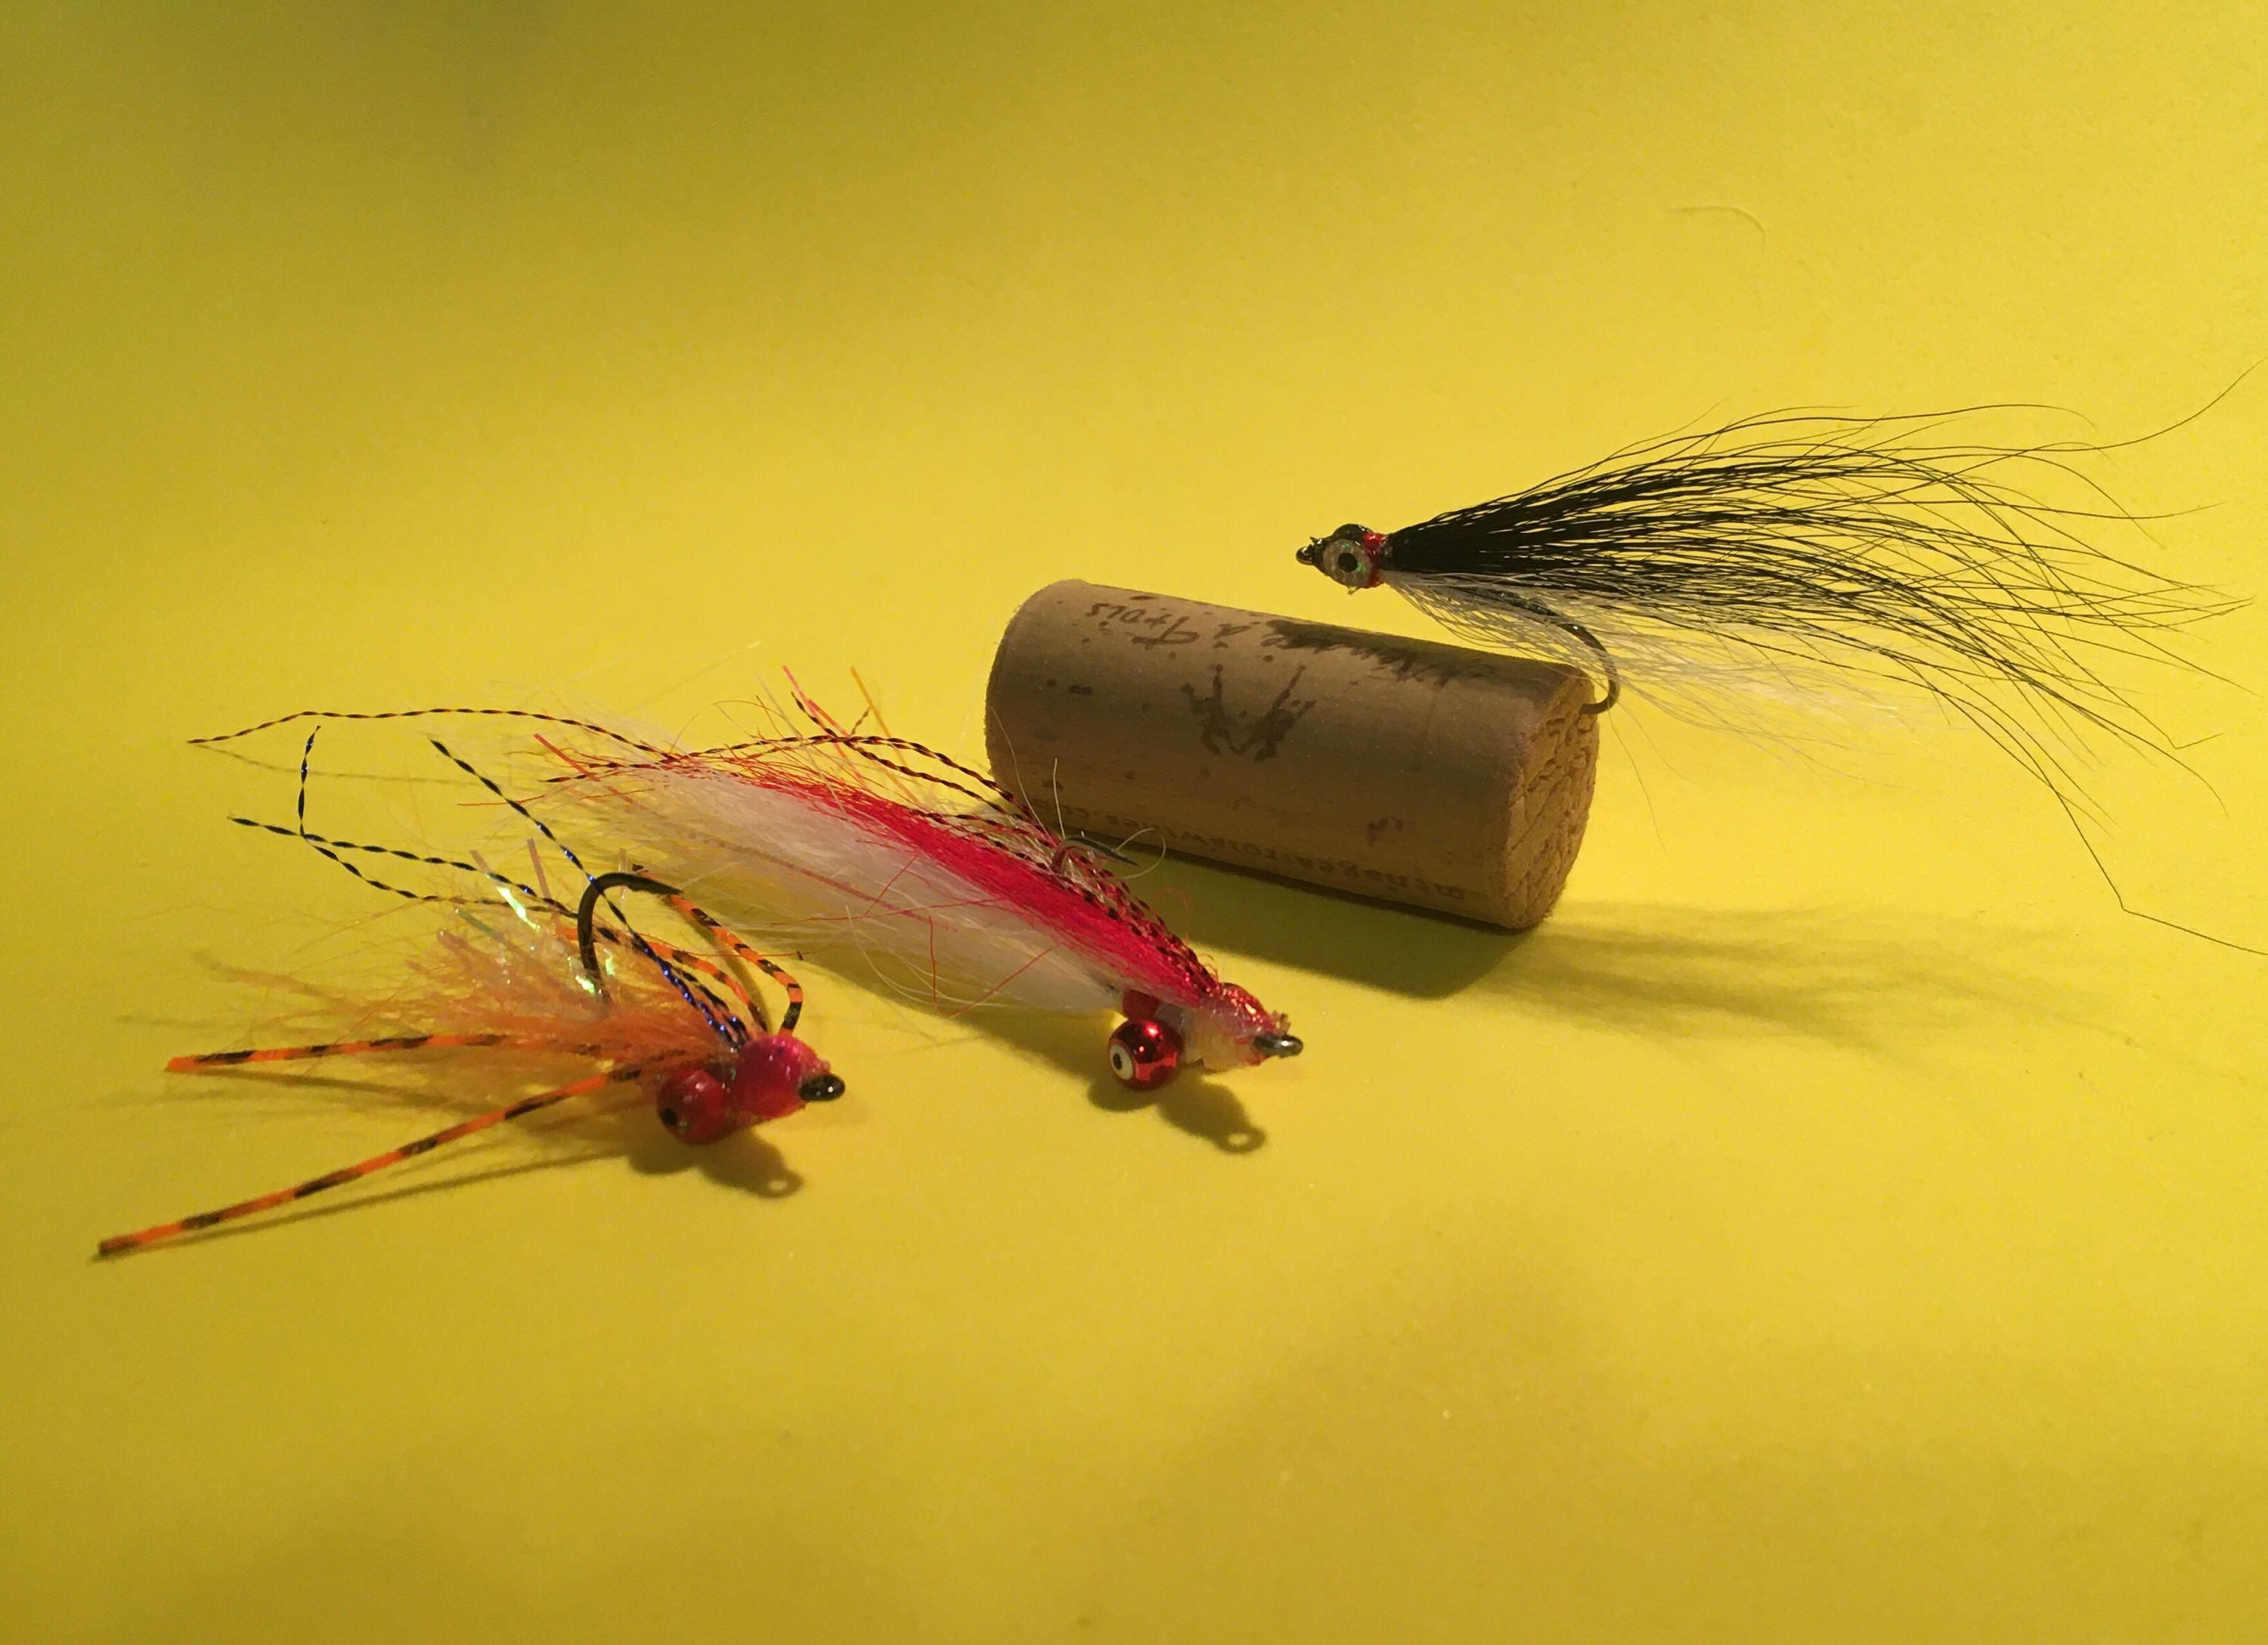 Tying One On…